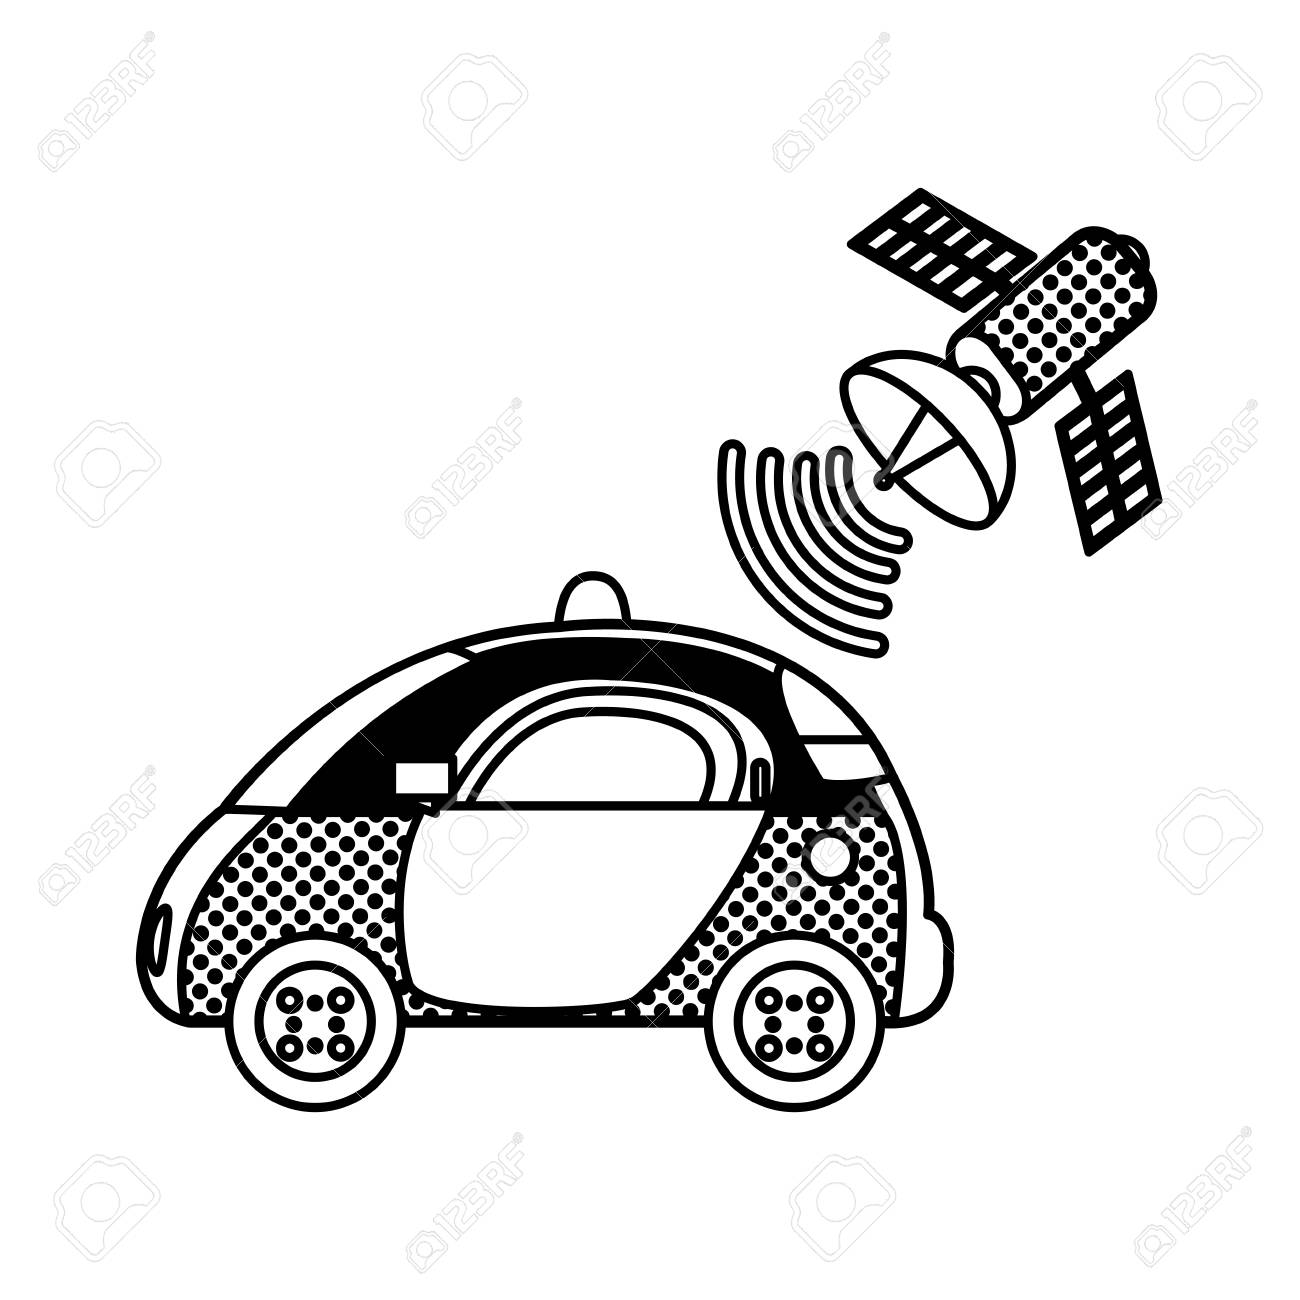 filling, texture police car with satellite wifi connection vector illustration - 96679304